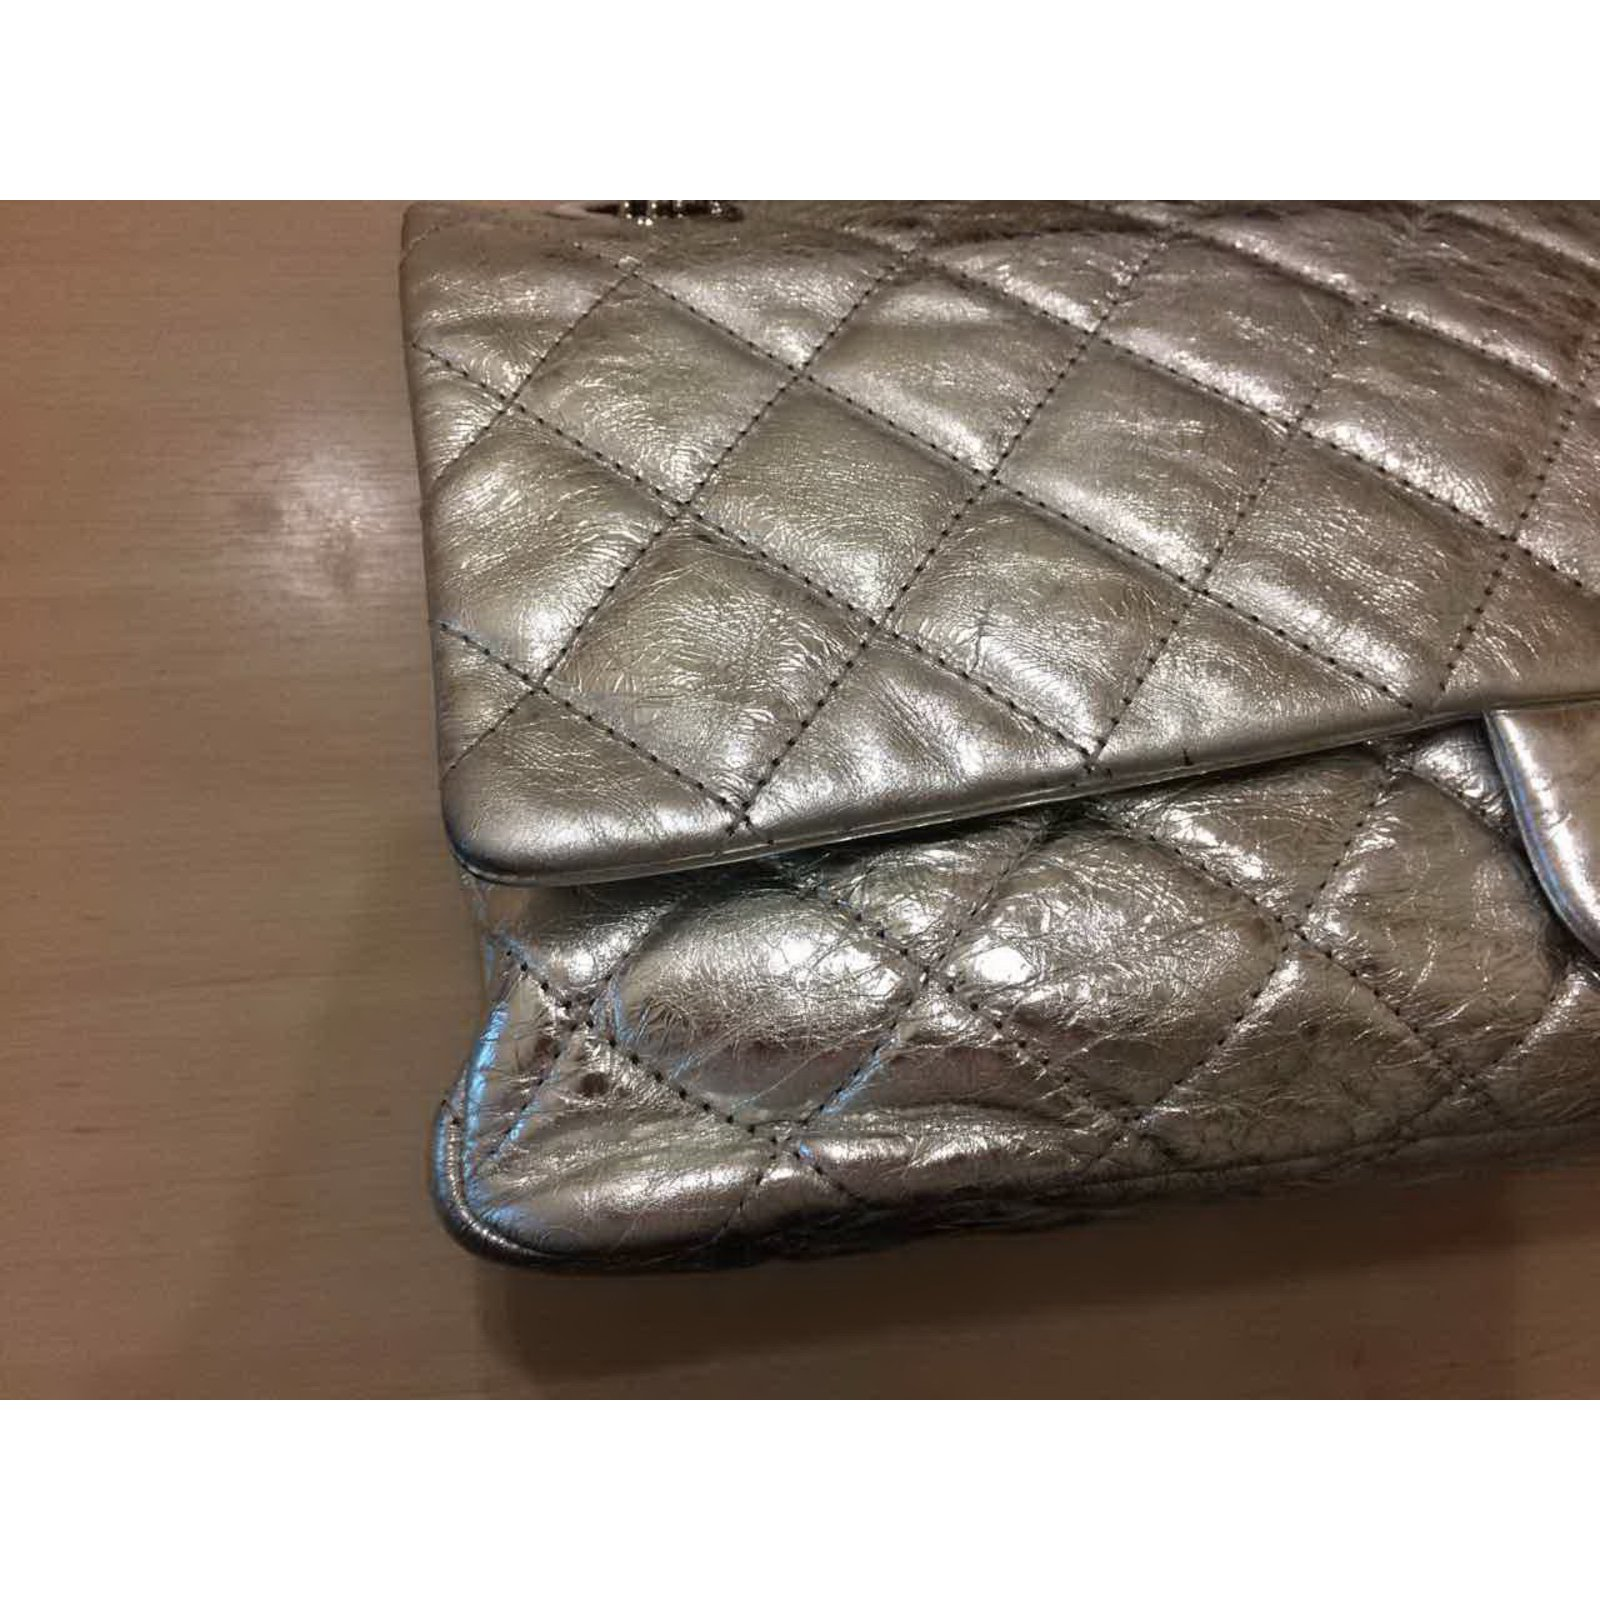 d46812d6635d Chanel Silver Metallic 2.55 Reissue Quilted Classic Leather 227 Jumbo Flap  Bag Handbags Leather Silvery ref.36245 - Joli Closet